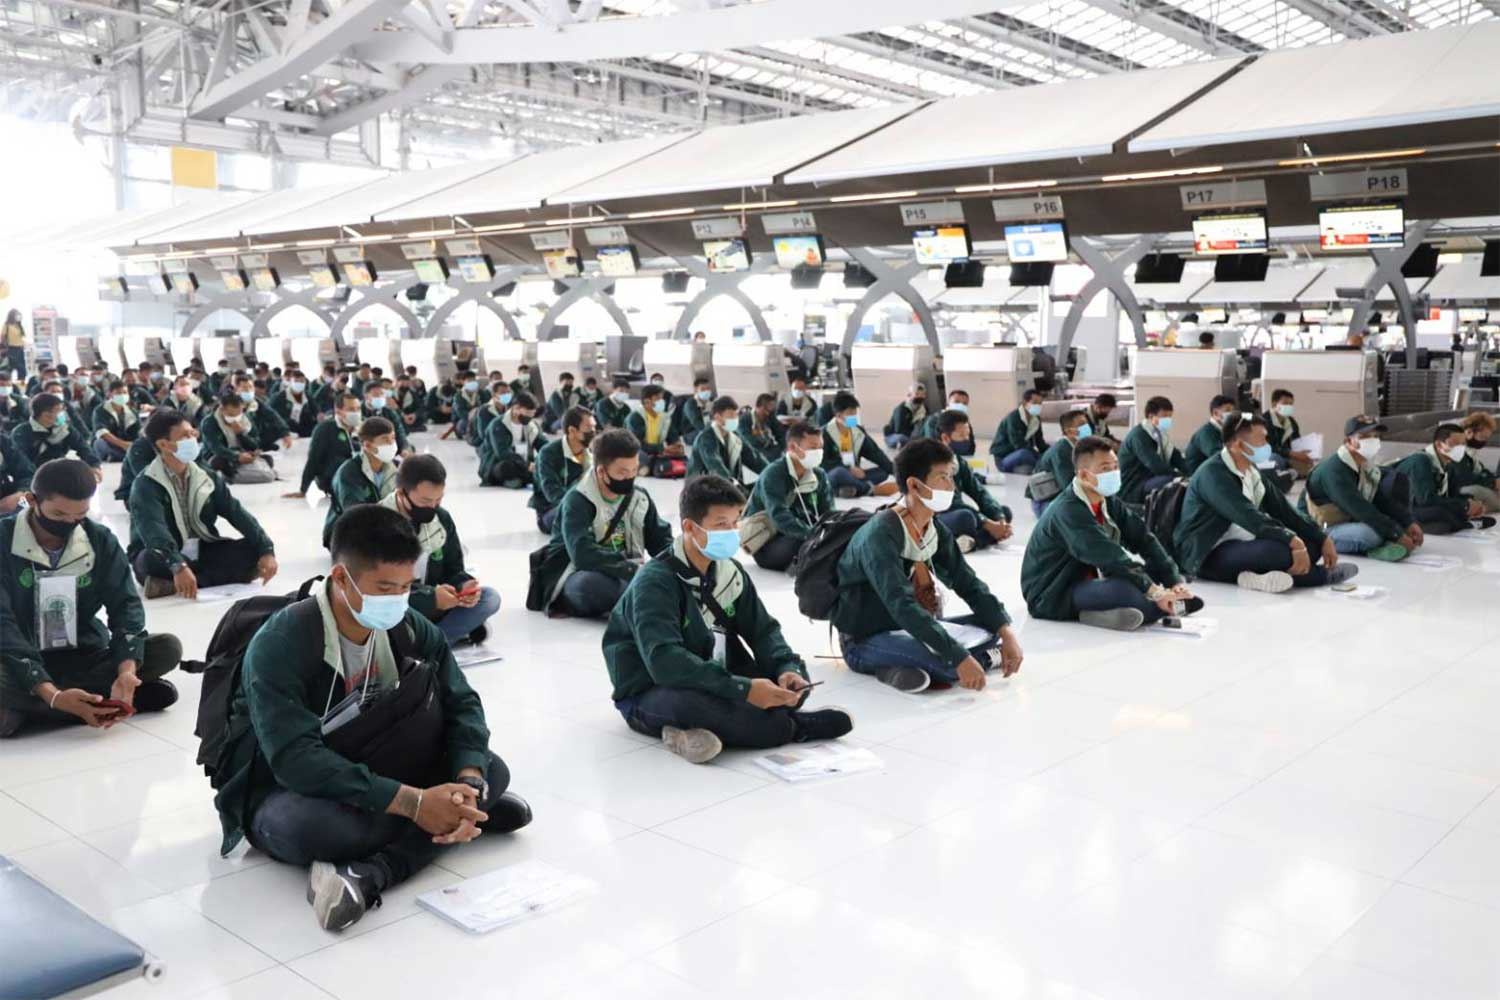 The 214 Thai workers gather at Suvarnabhumi airport on Wednesday before leaving for Israel to work in the agricultural sector. (Photo from @ThailandMOL Ministry of Labour Facebook page)